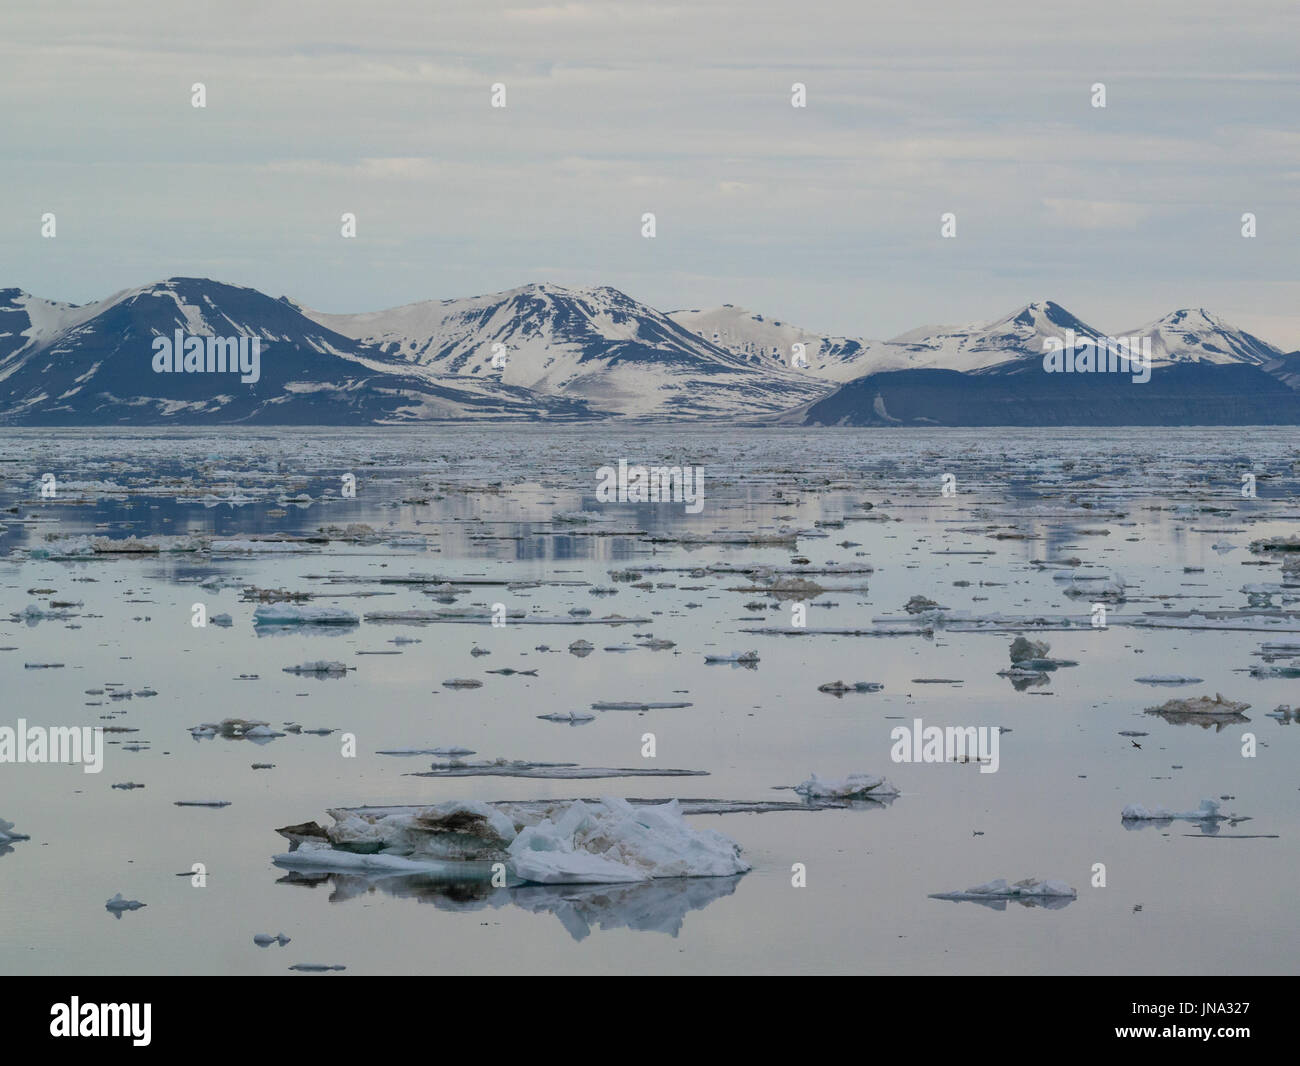 Ice floes covering waters of Storfjorden great briny bay between Spitsbergen island to the west and the islands of Barentsøya and Edgeøya to the east - Stock Image